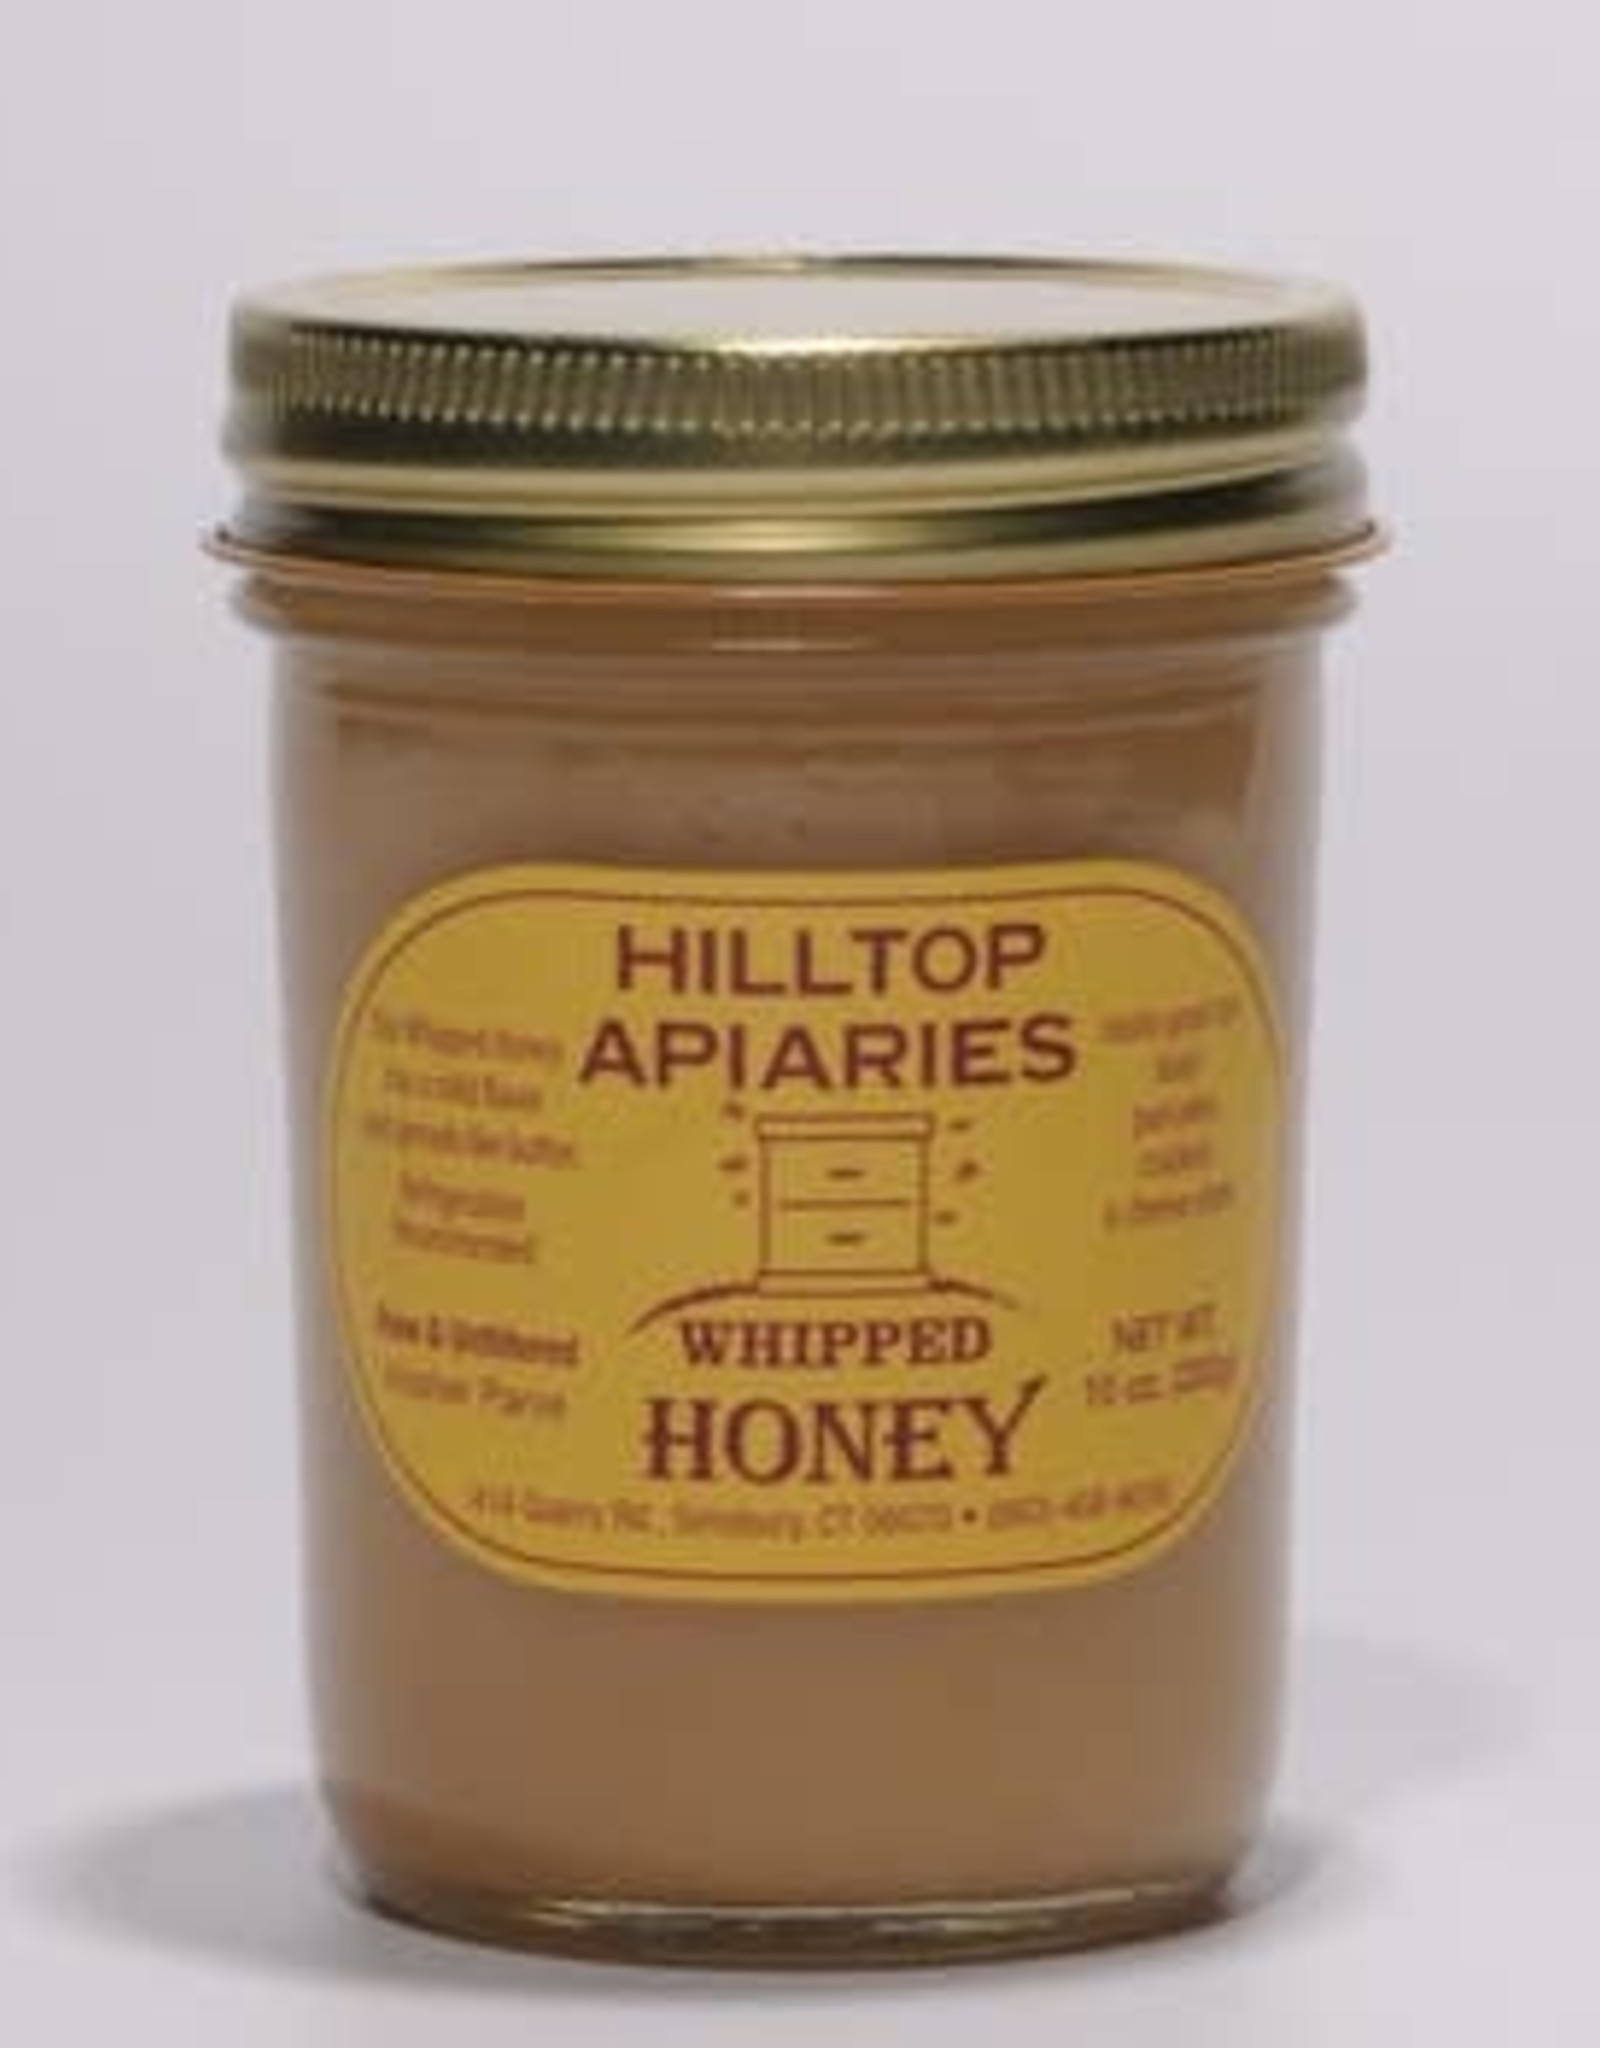 Hilltop Apiaries Whipped Honey Spread 10oz